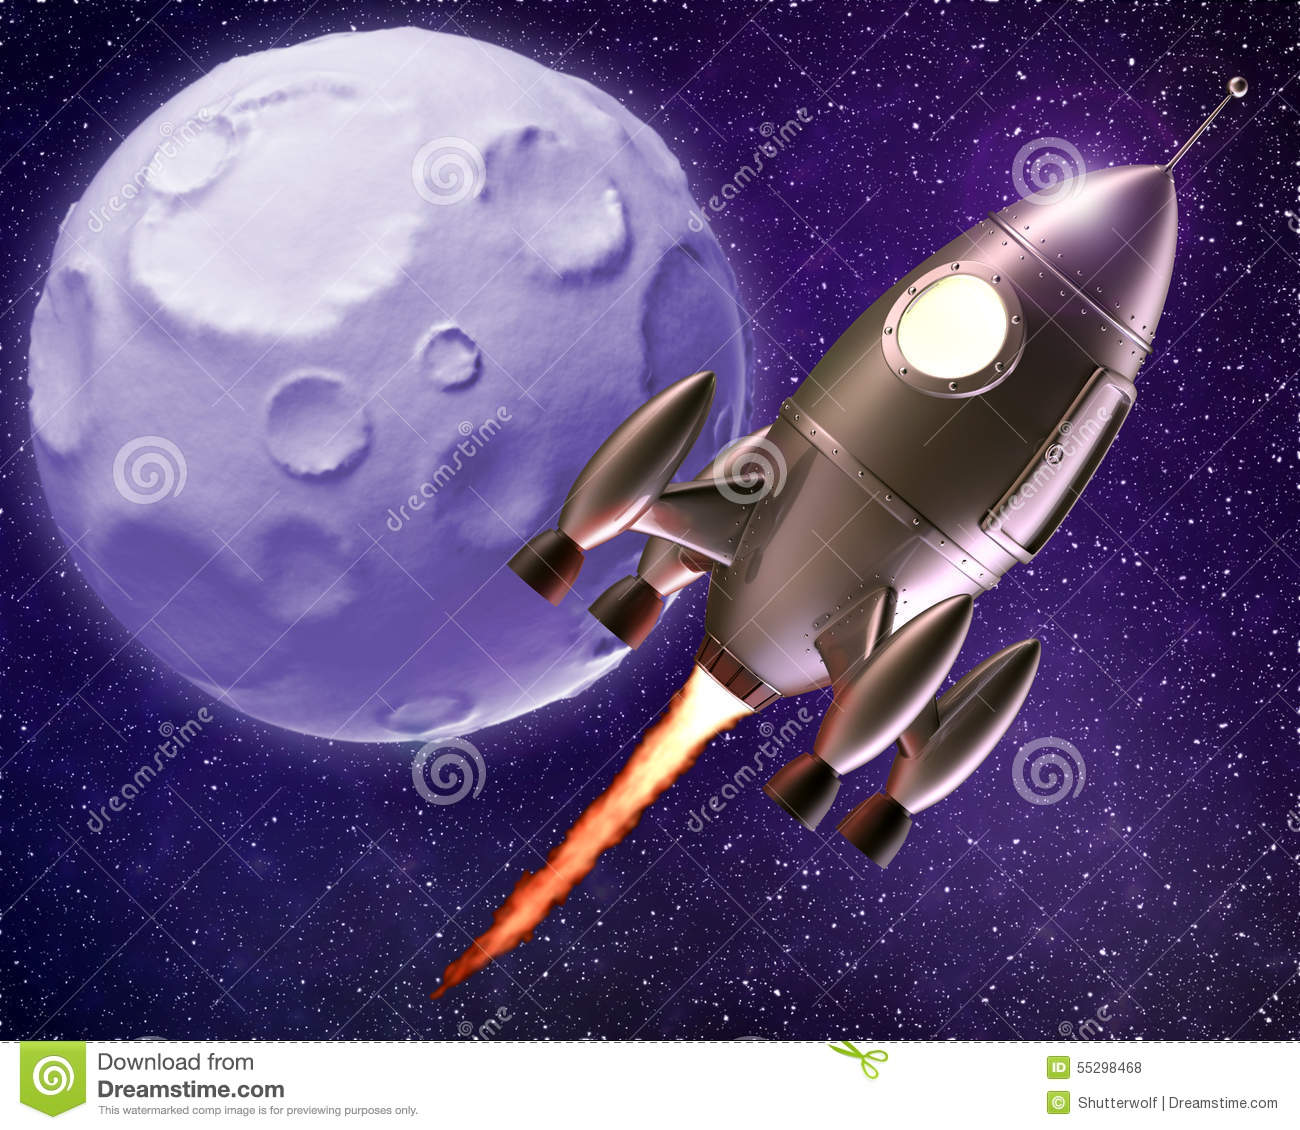 Cartoon space rocket stock image 64154197 for Flying spaces